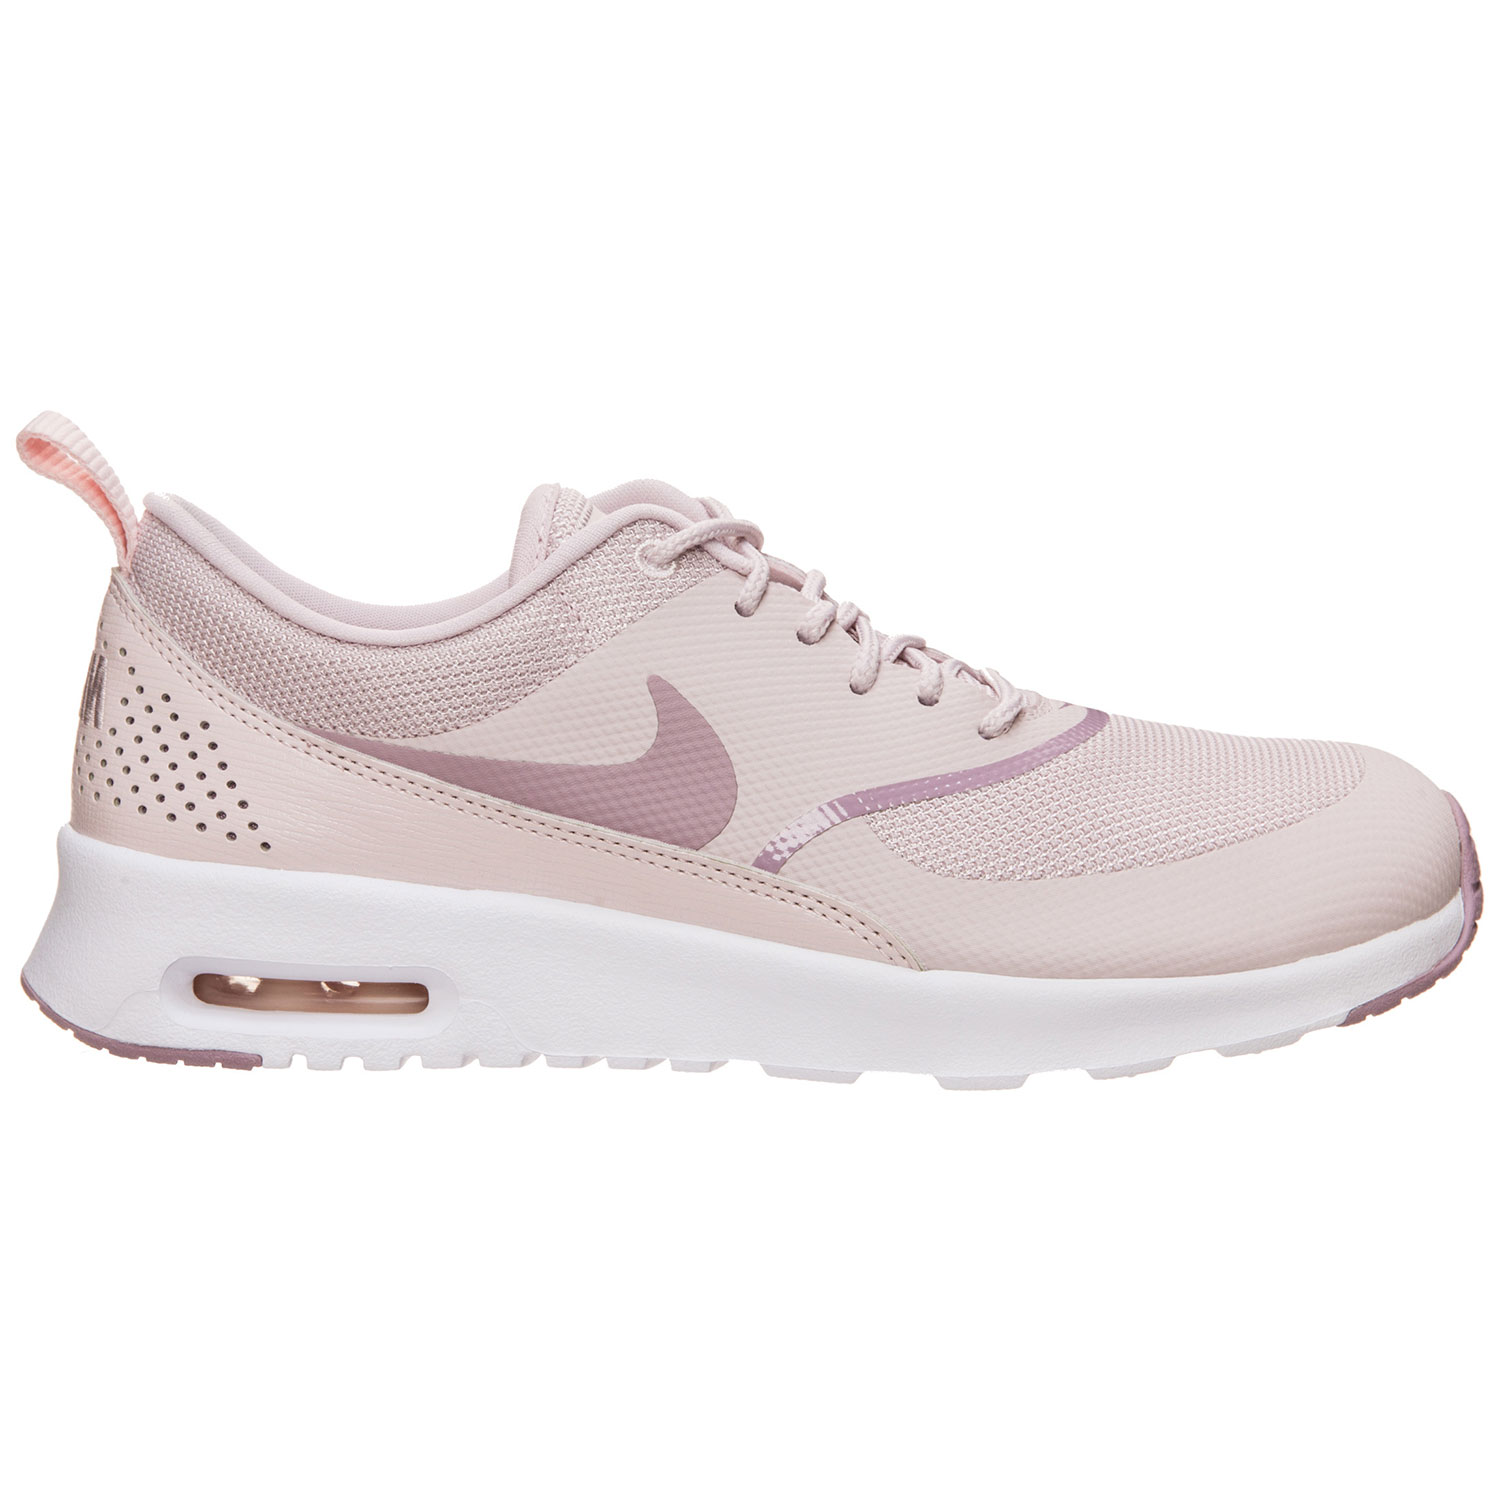 Nike WMNS Air Max Thea Damen Sneaker barely rose 599409 612